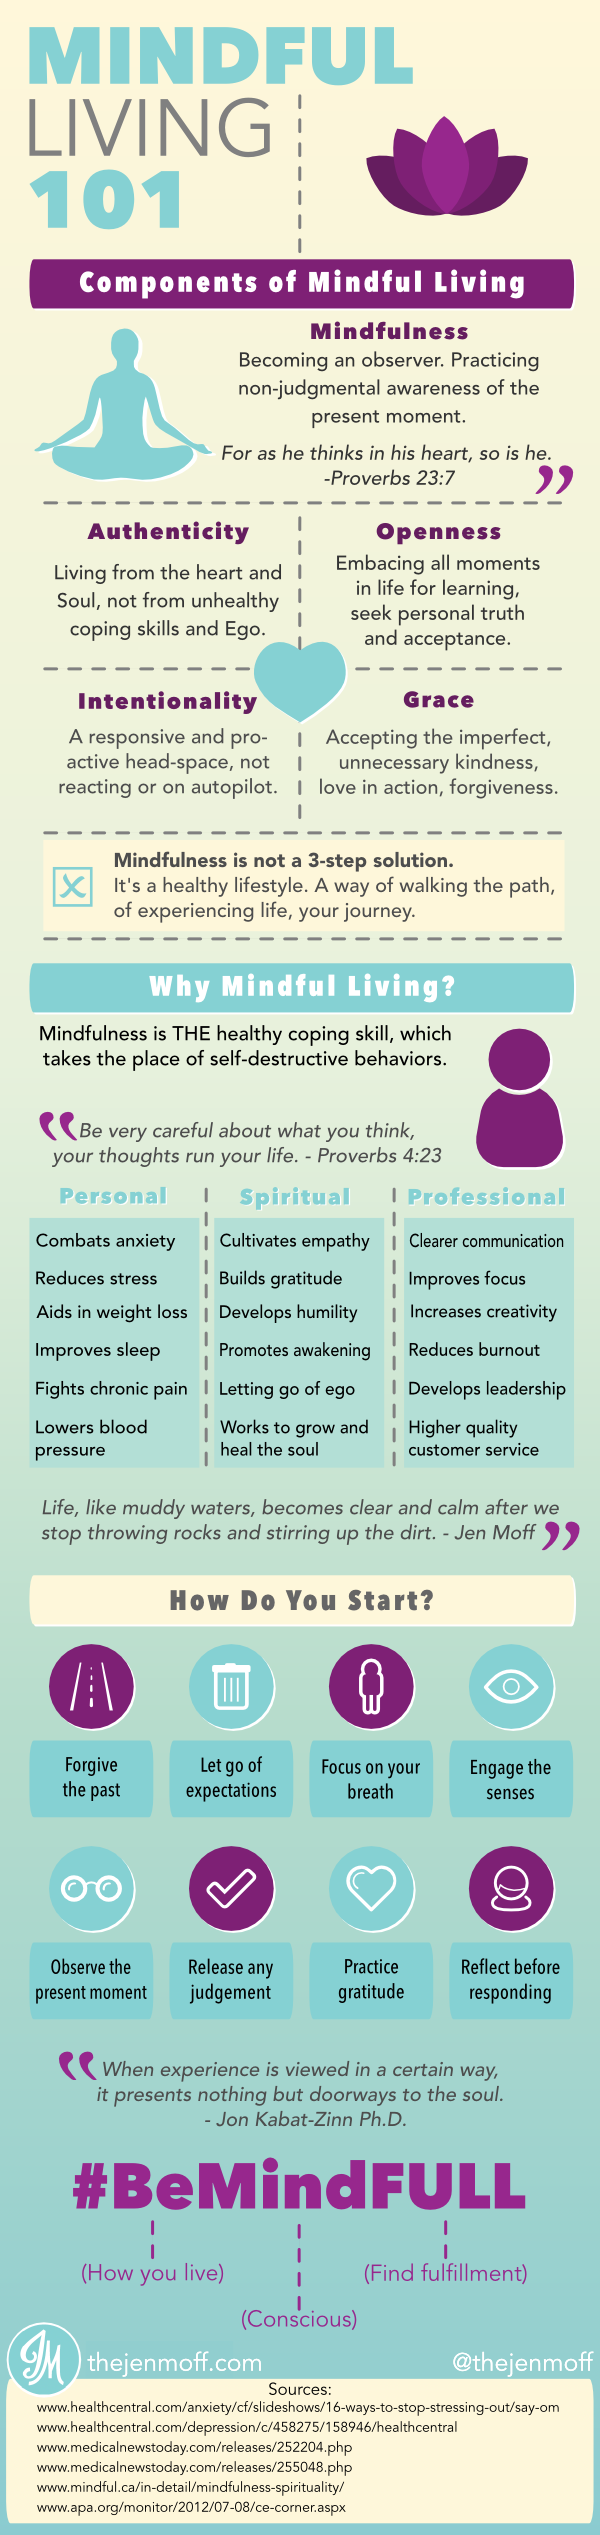 Mindful living 101 emmamildon mindful enlightened mantra inspiration fandeluxe Choice Image